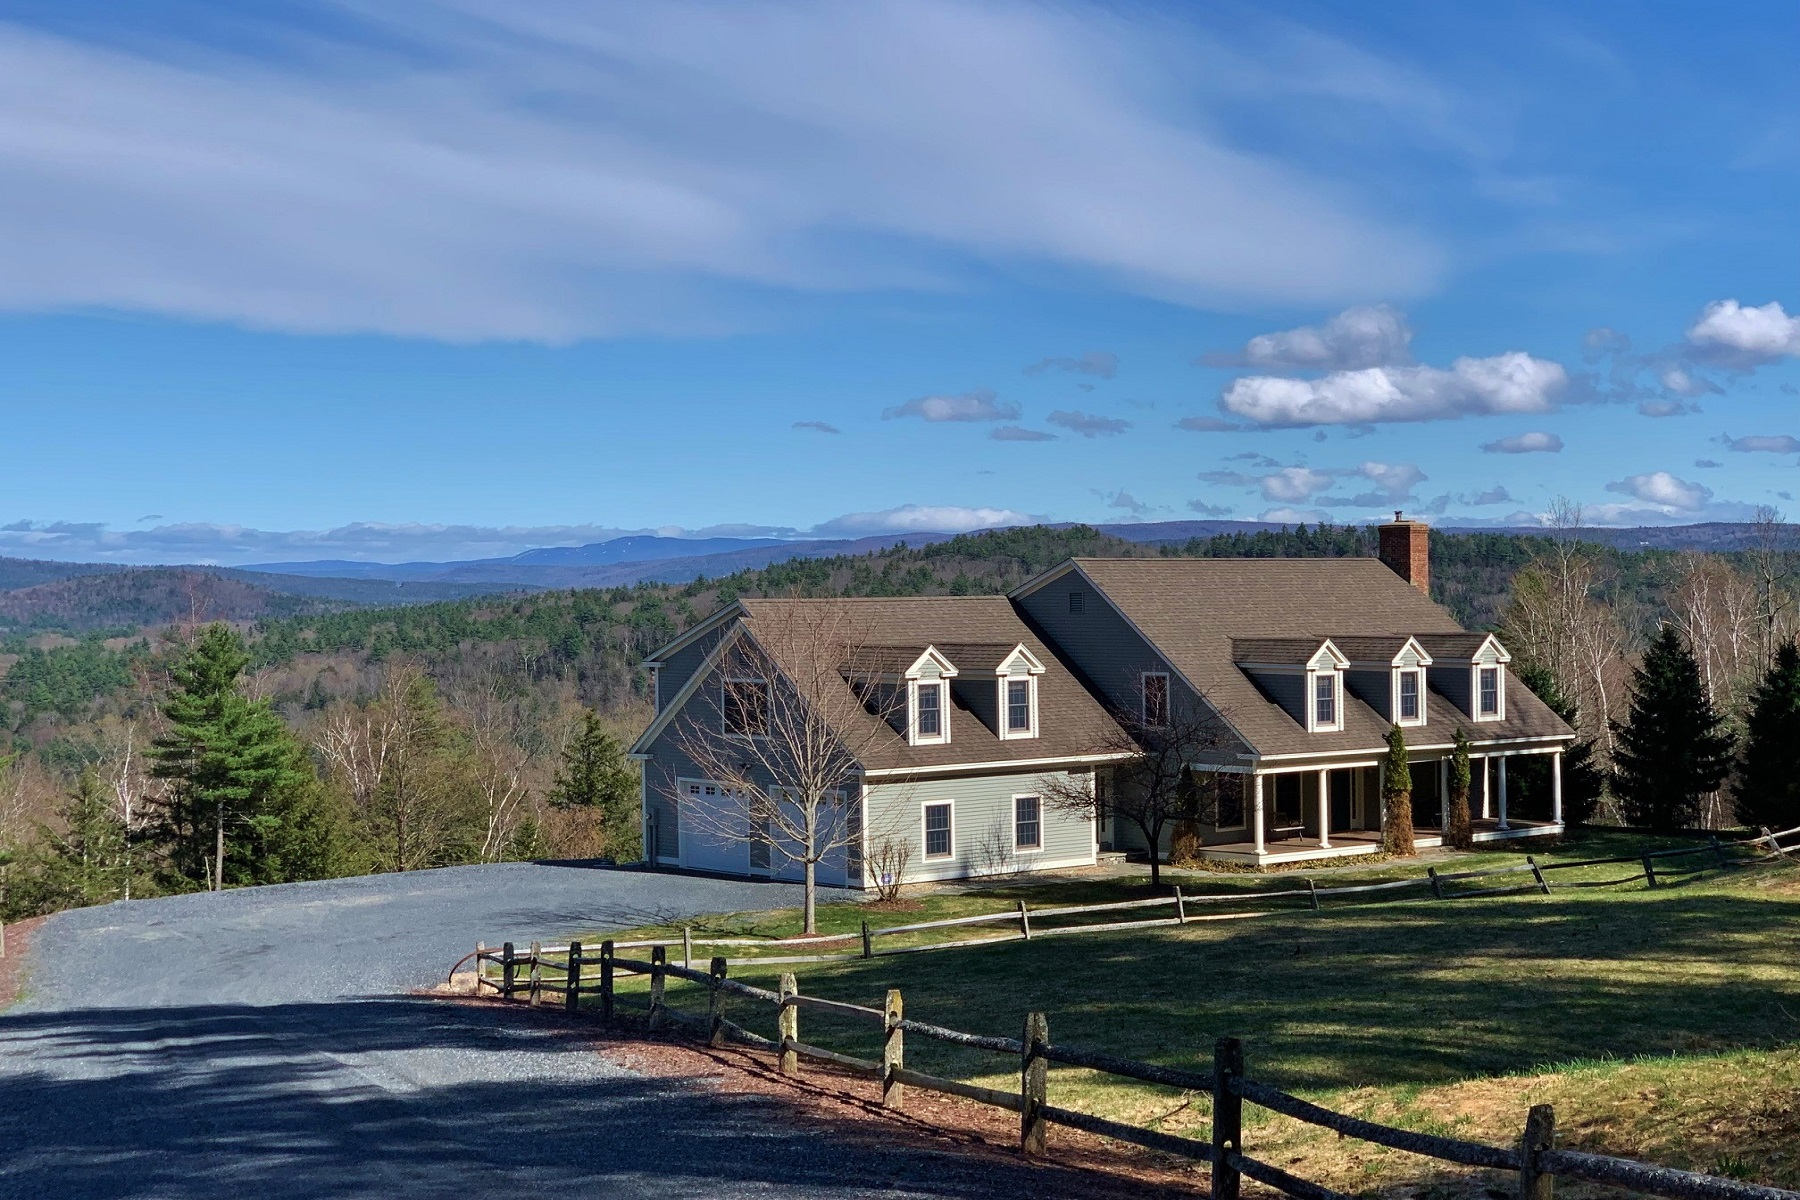 Single Family Homes for Sale at Elegant Cape-Style Residence 2117 Gird Lot Road Weathersfield, Vermont 05030 United States